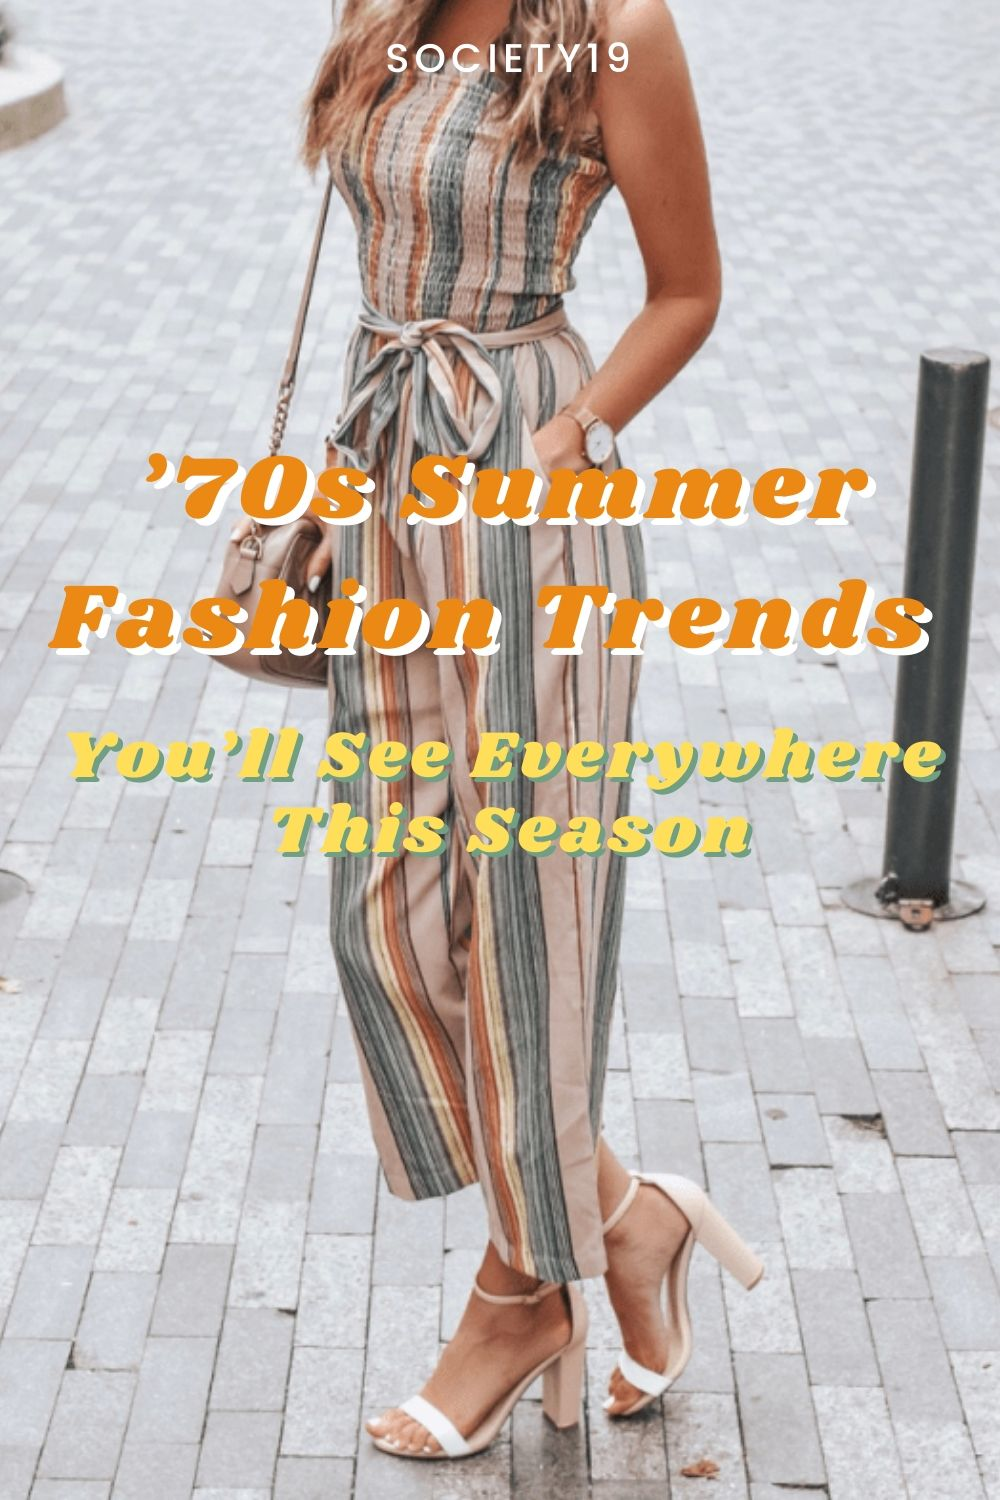 '70s Summer Fashion Trends, '70s Summer Fashion Trends You'll See Everywhere This Season